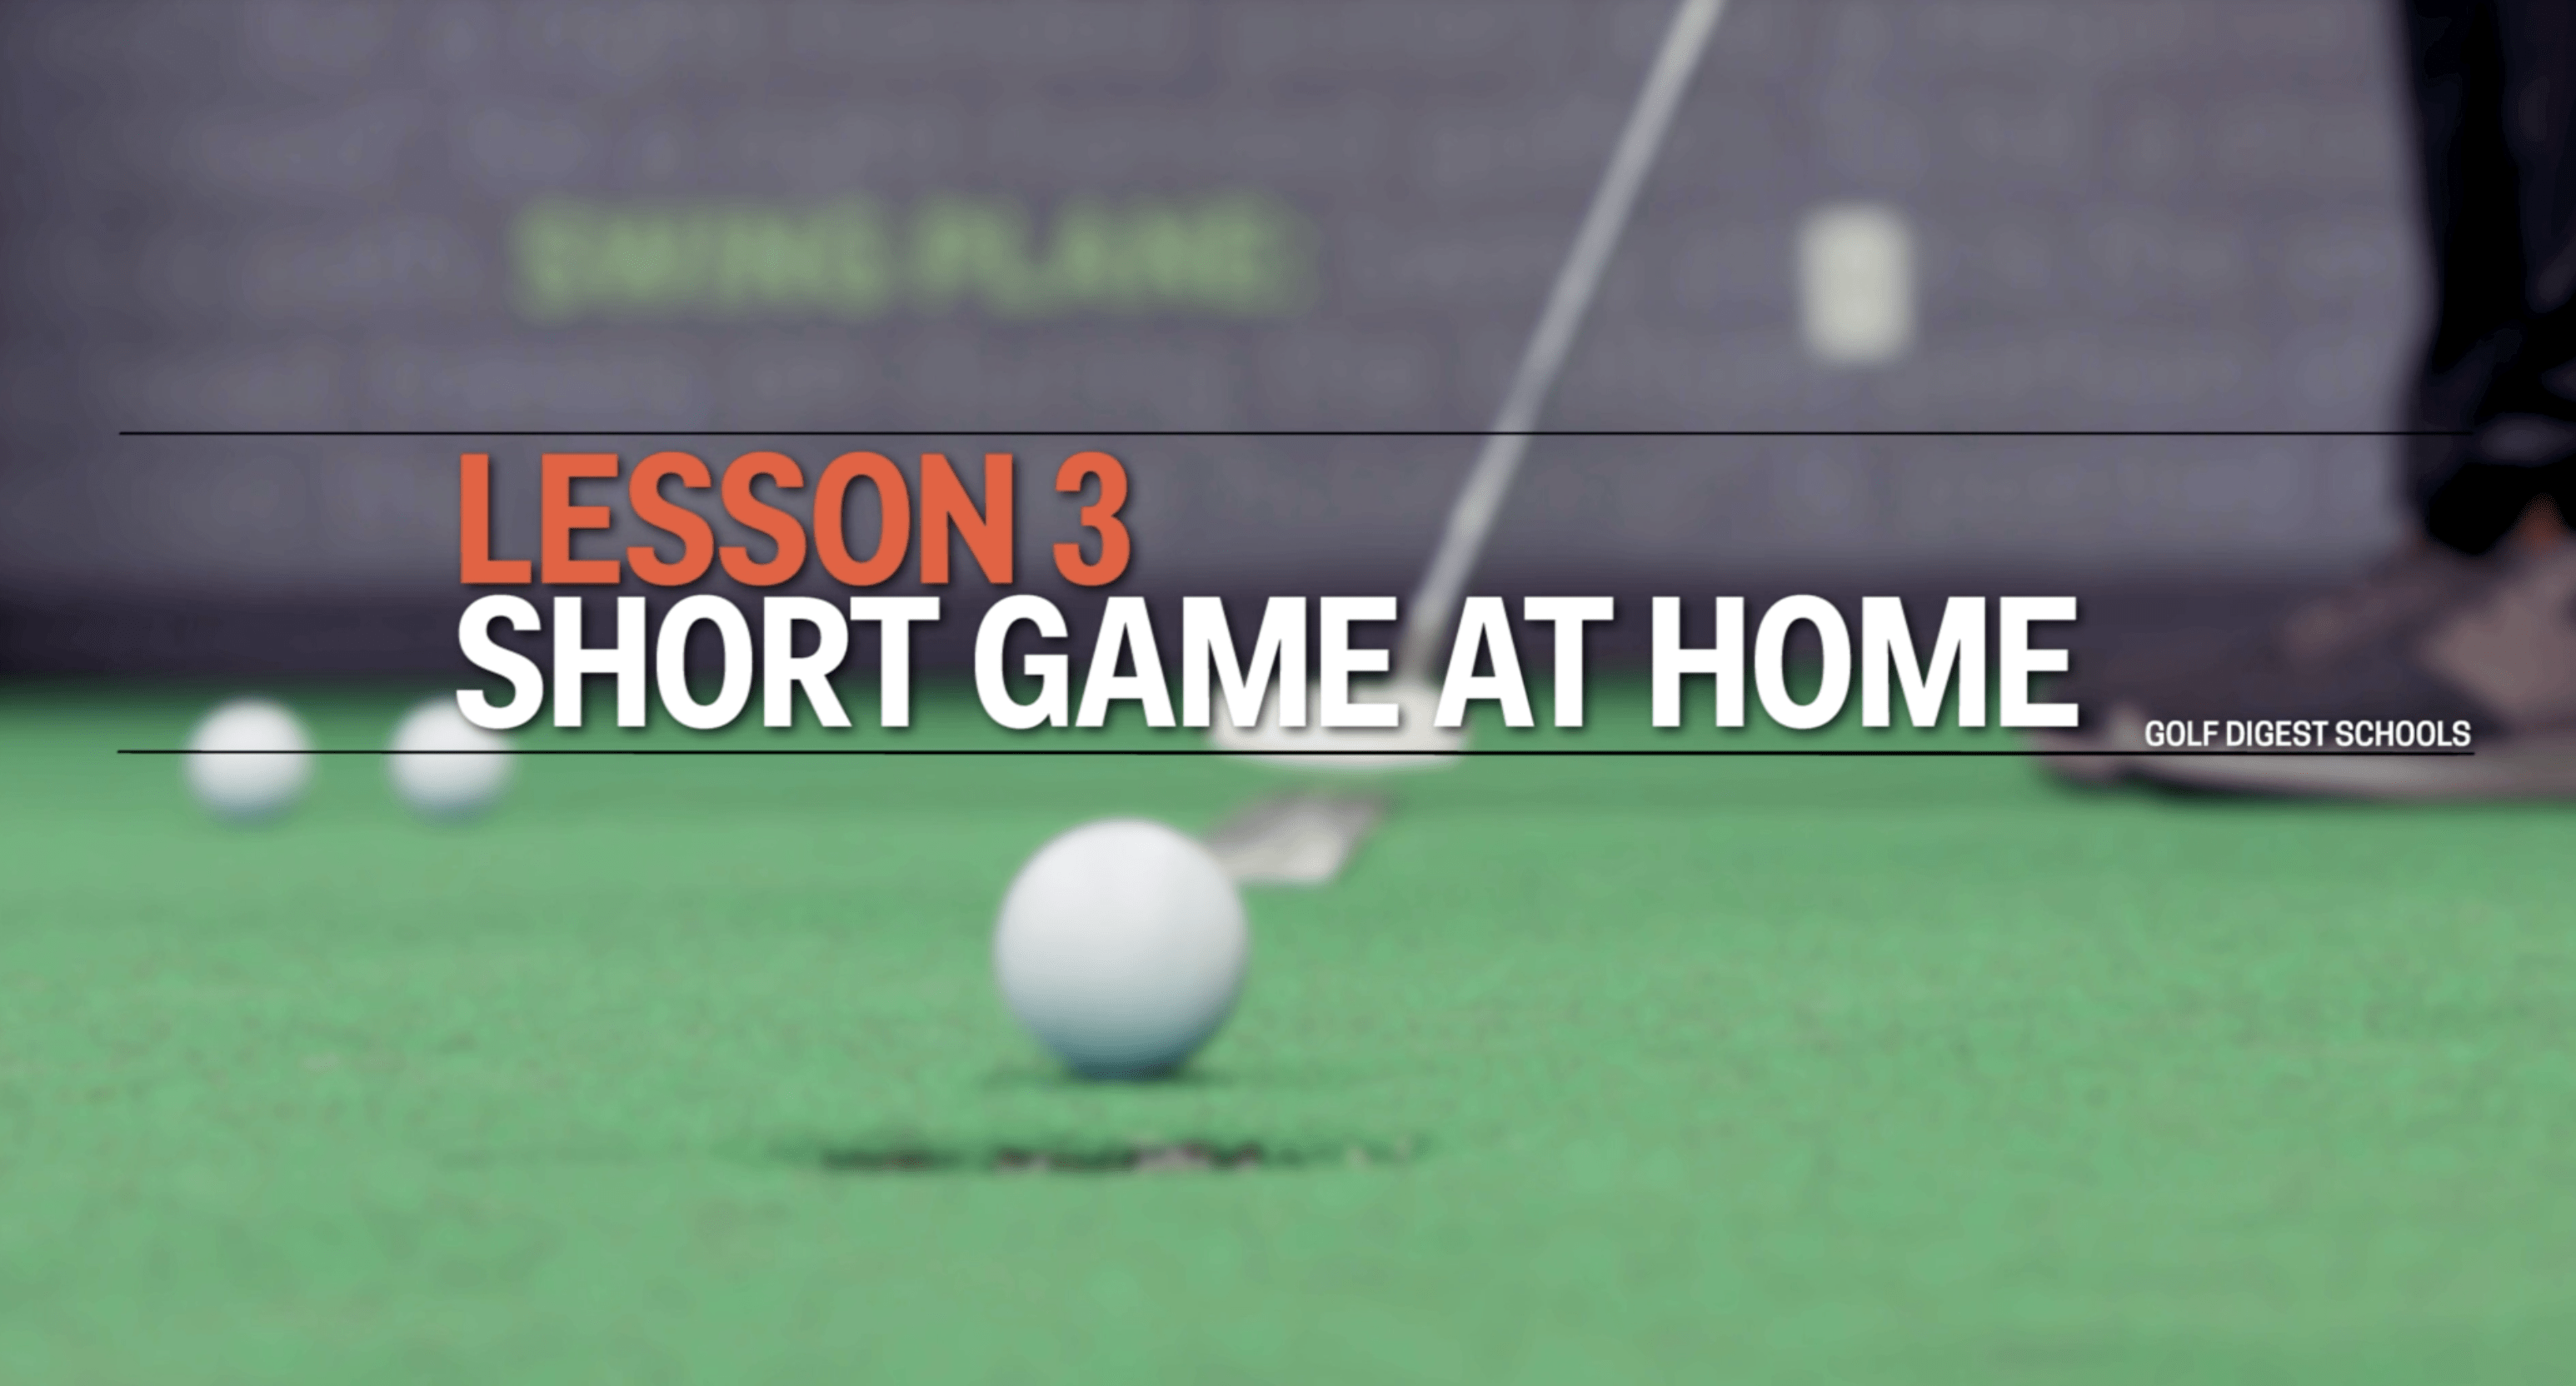 Lesson 3: Short Game at Home